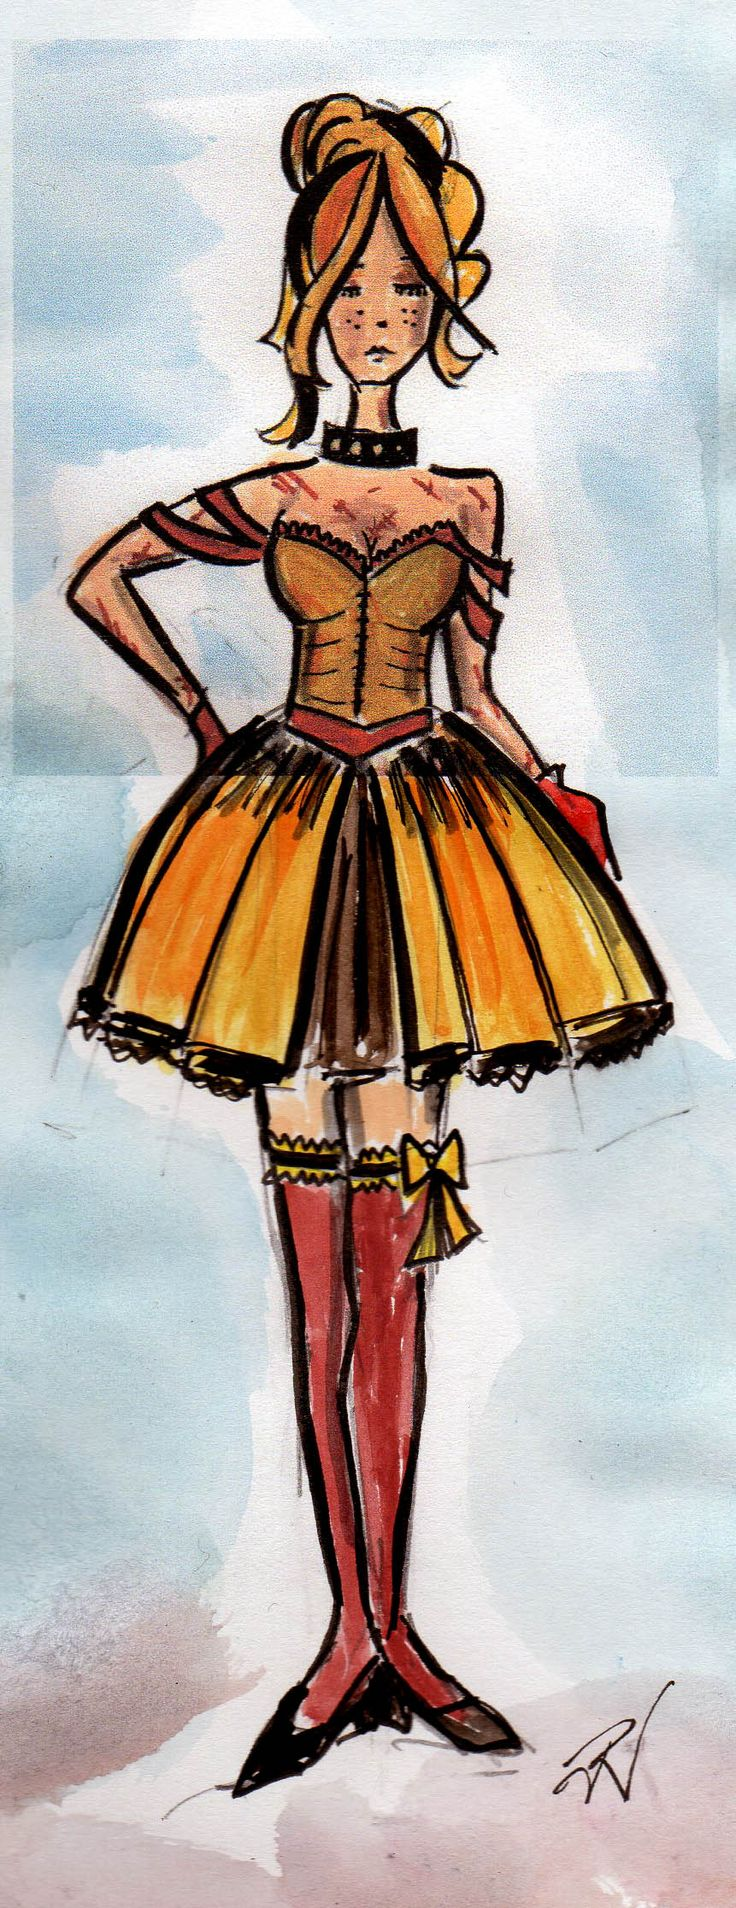 Demeter concept drawing by Trish Chamberlain for Blue Mountains Musical Society production of Cats